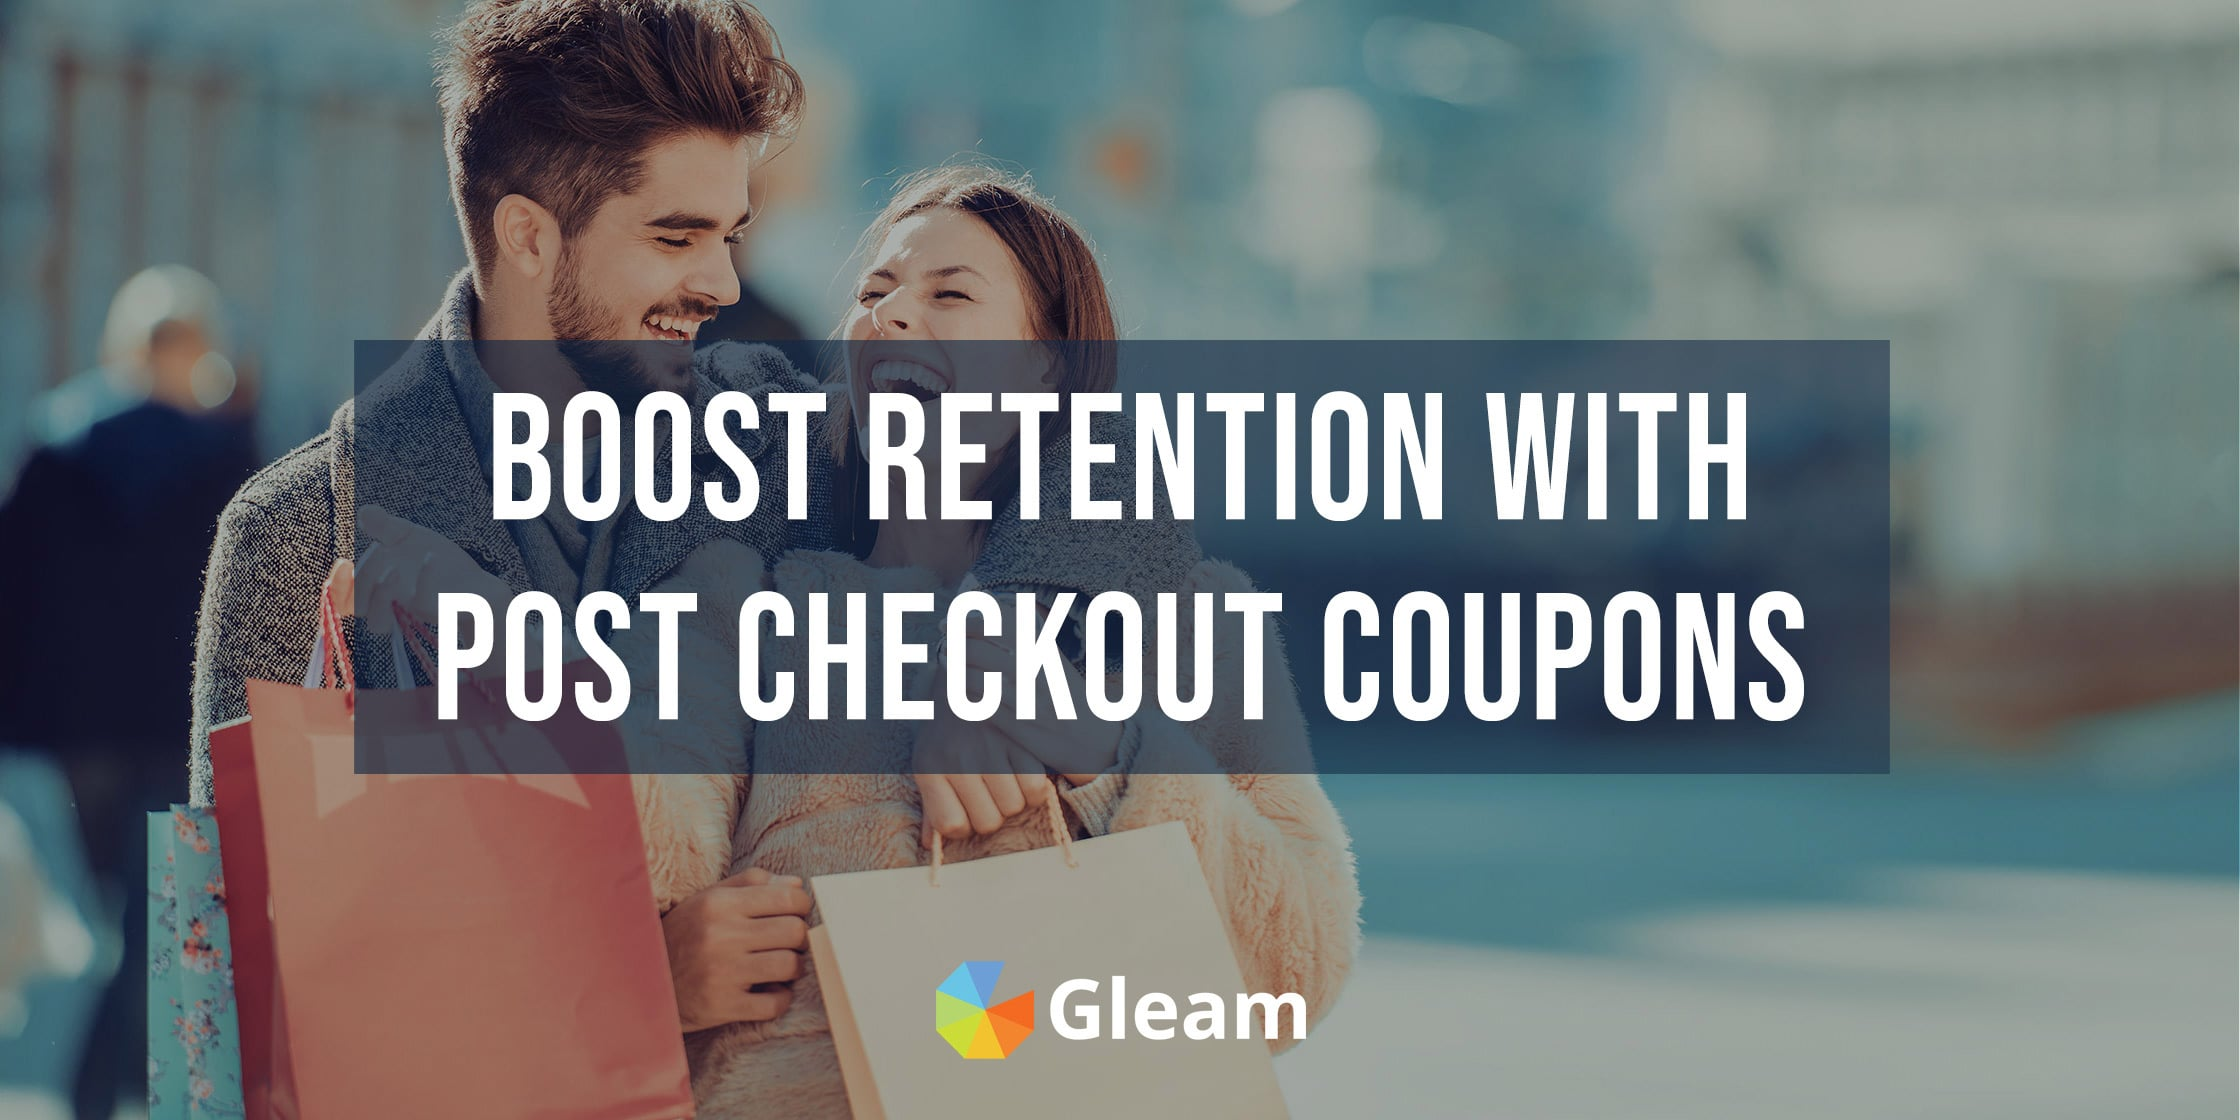 Drive Customer Retention With Post Checkout Coupons